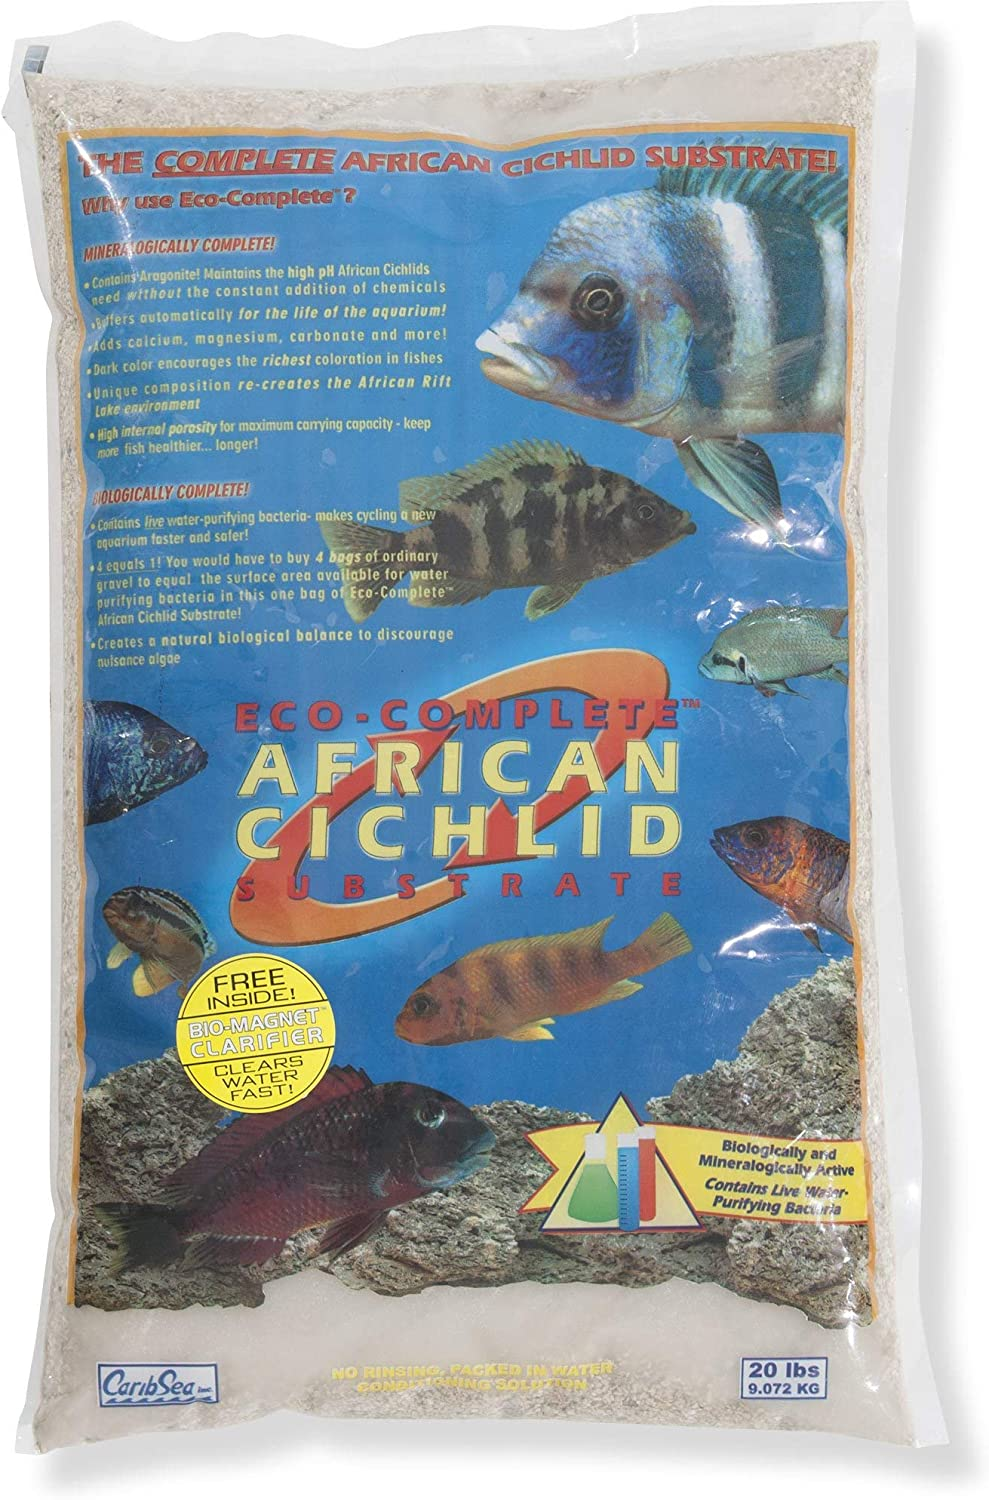 Carib Sea Eco-Complete African Cichlid White Sand Substrate